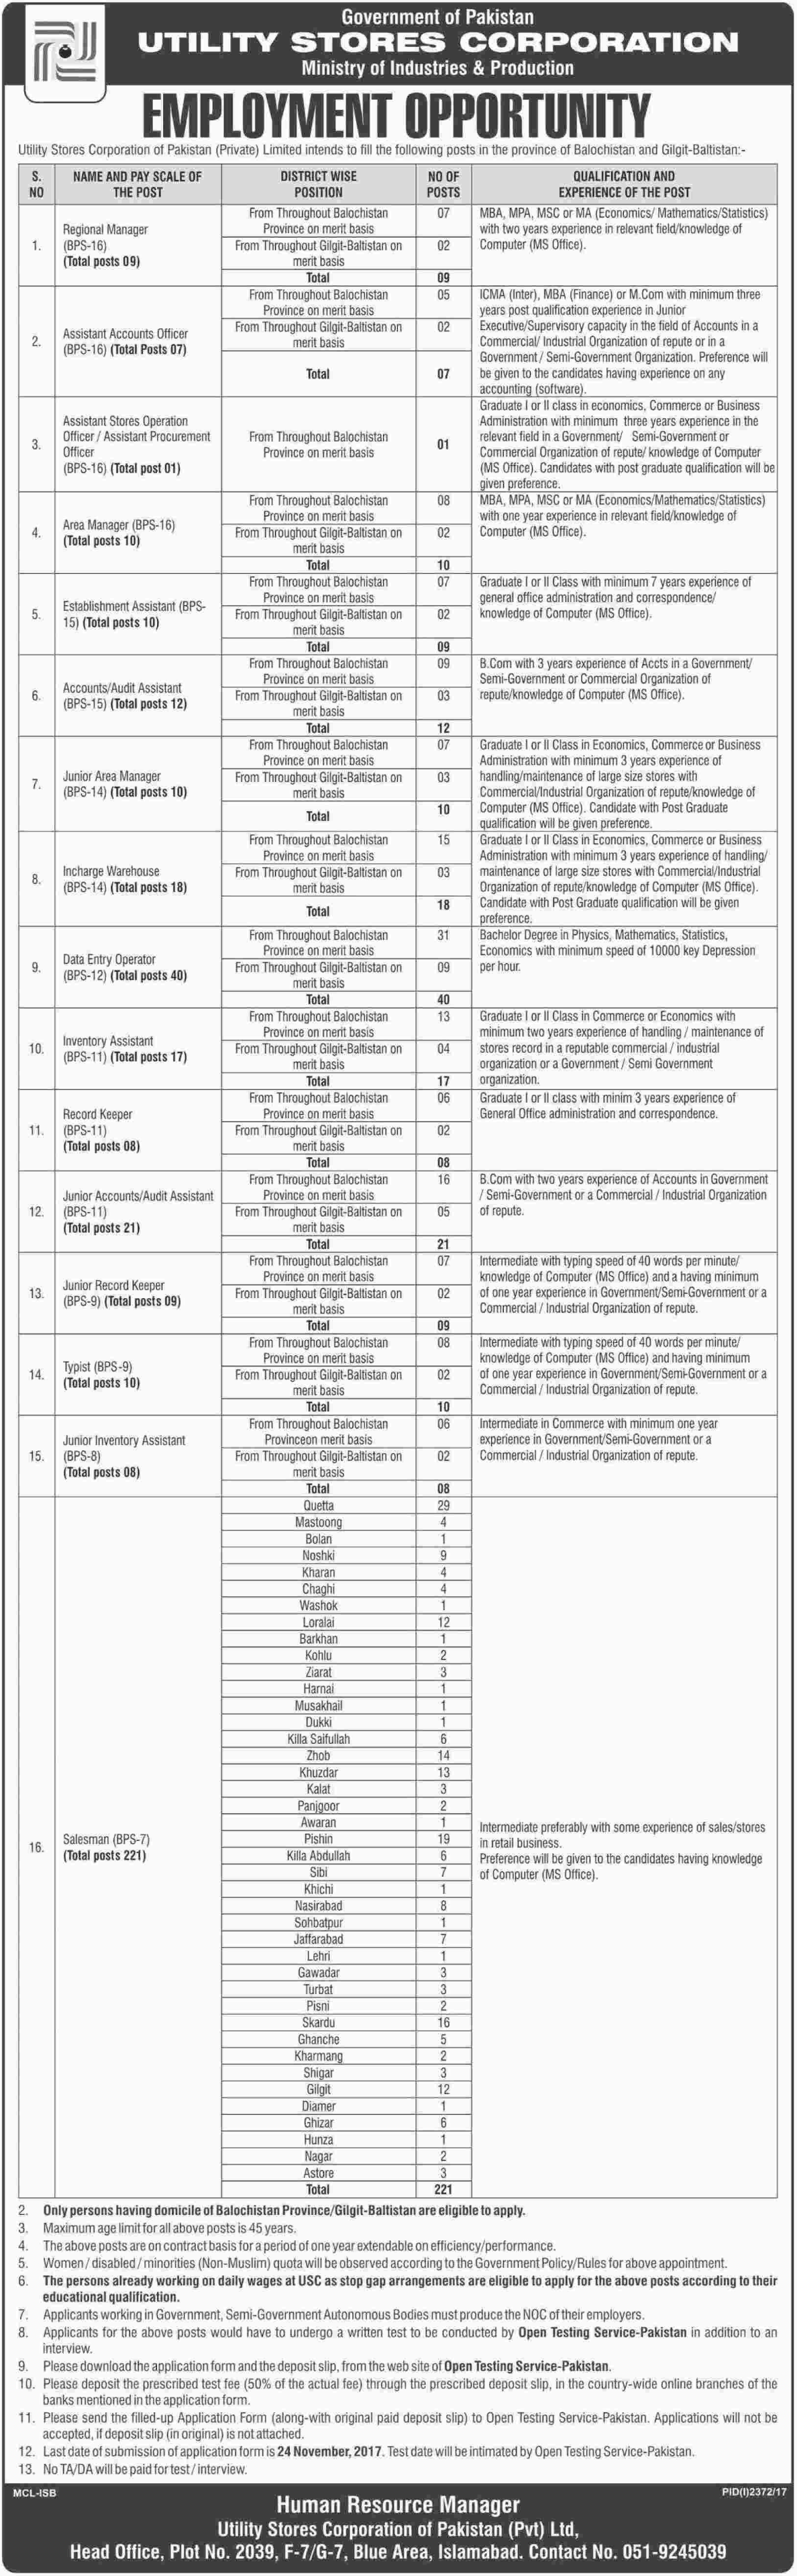 Utility Stores Corporation USC Jobs 2017